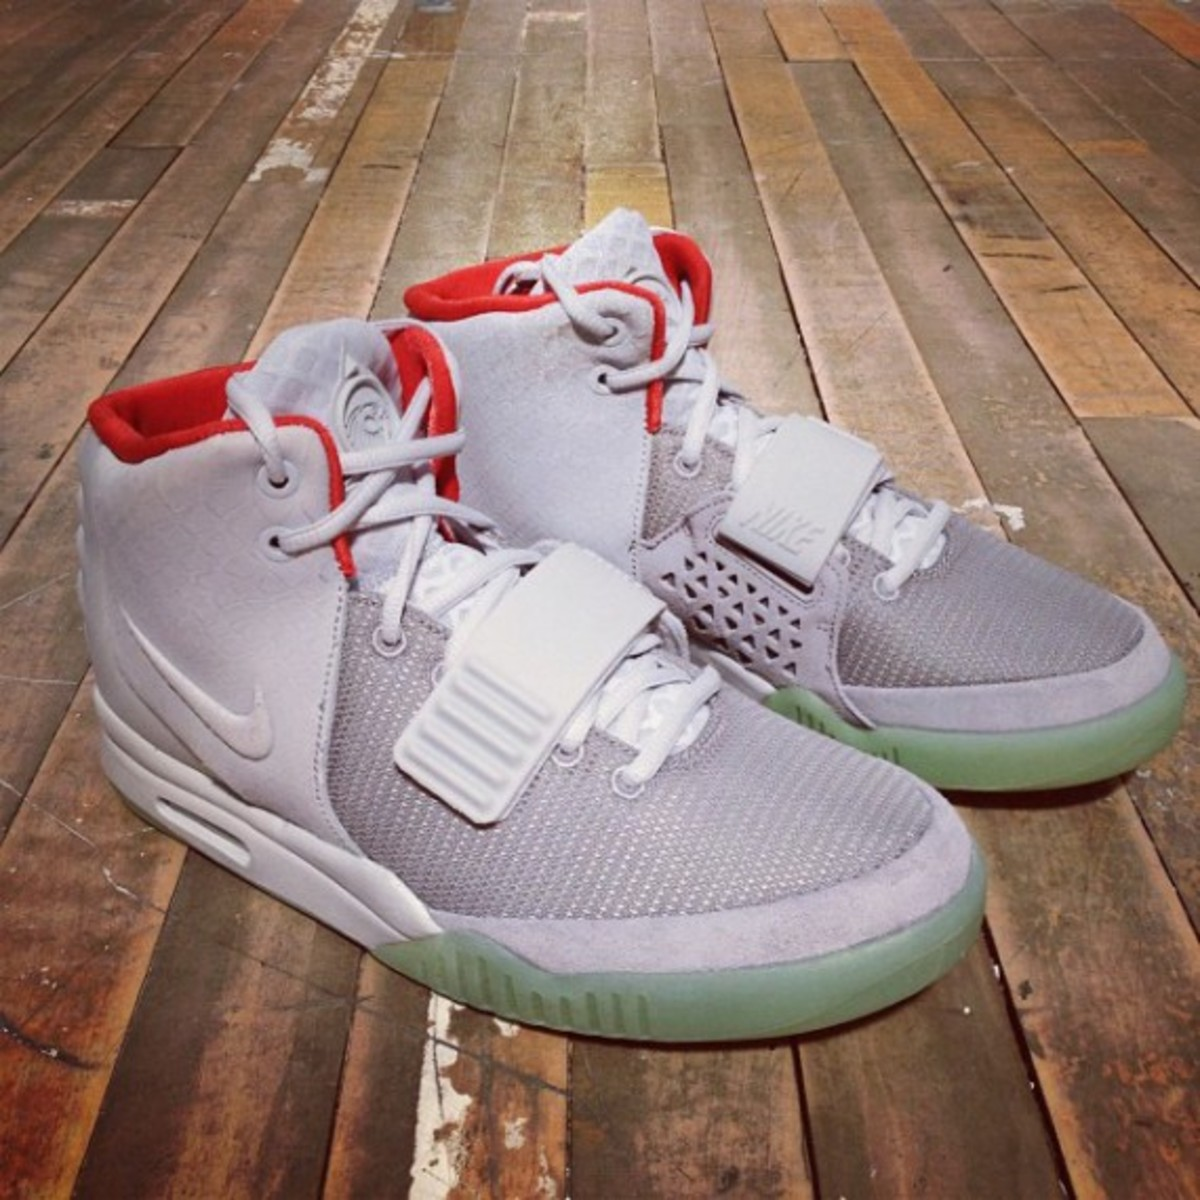 nike-air-yeezy-2-france-release-info-01